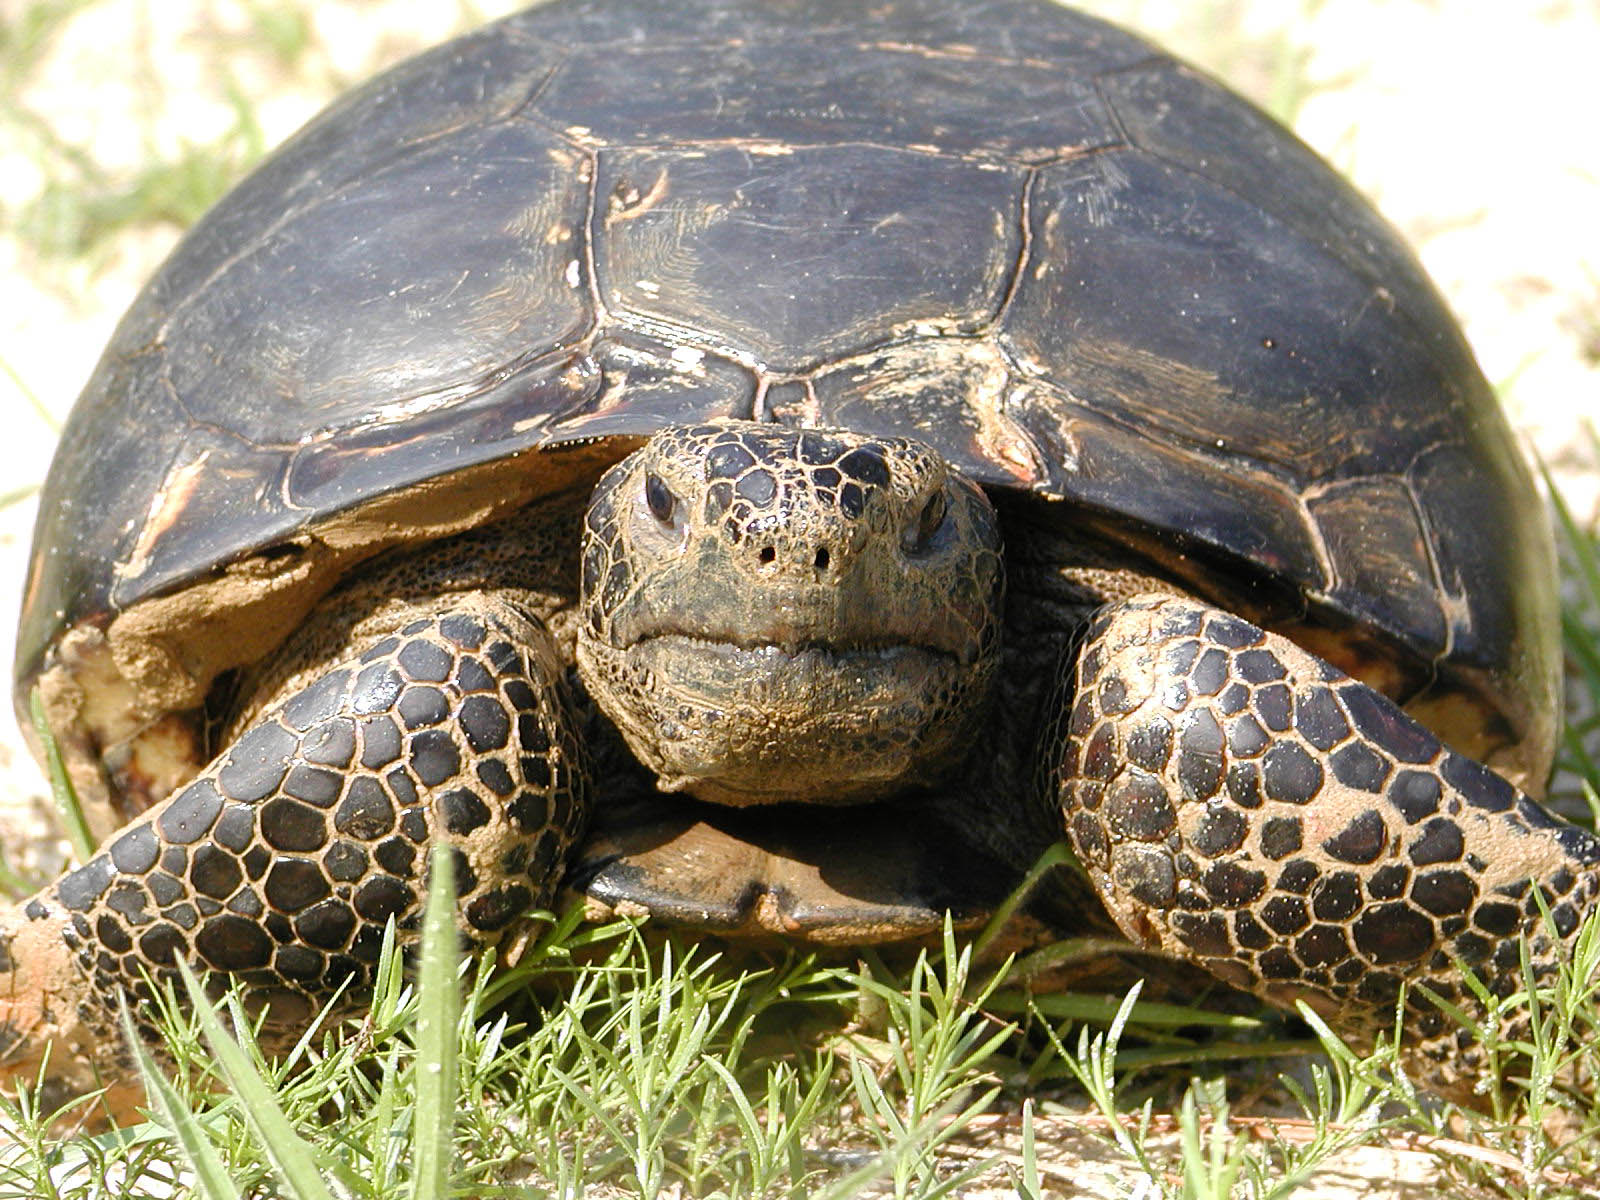 Photo of adult gopher tortoise - Randy Browning/USFWS